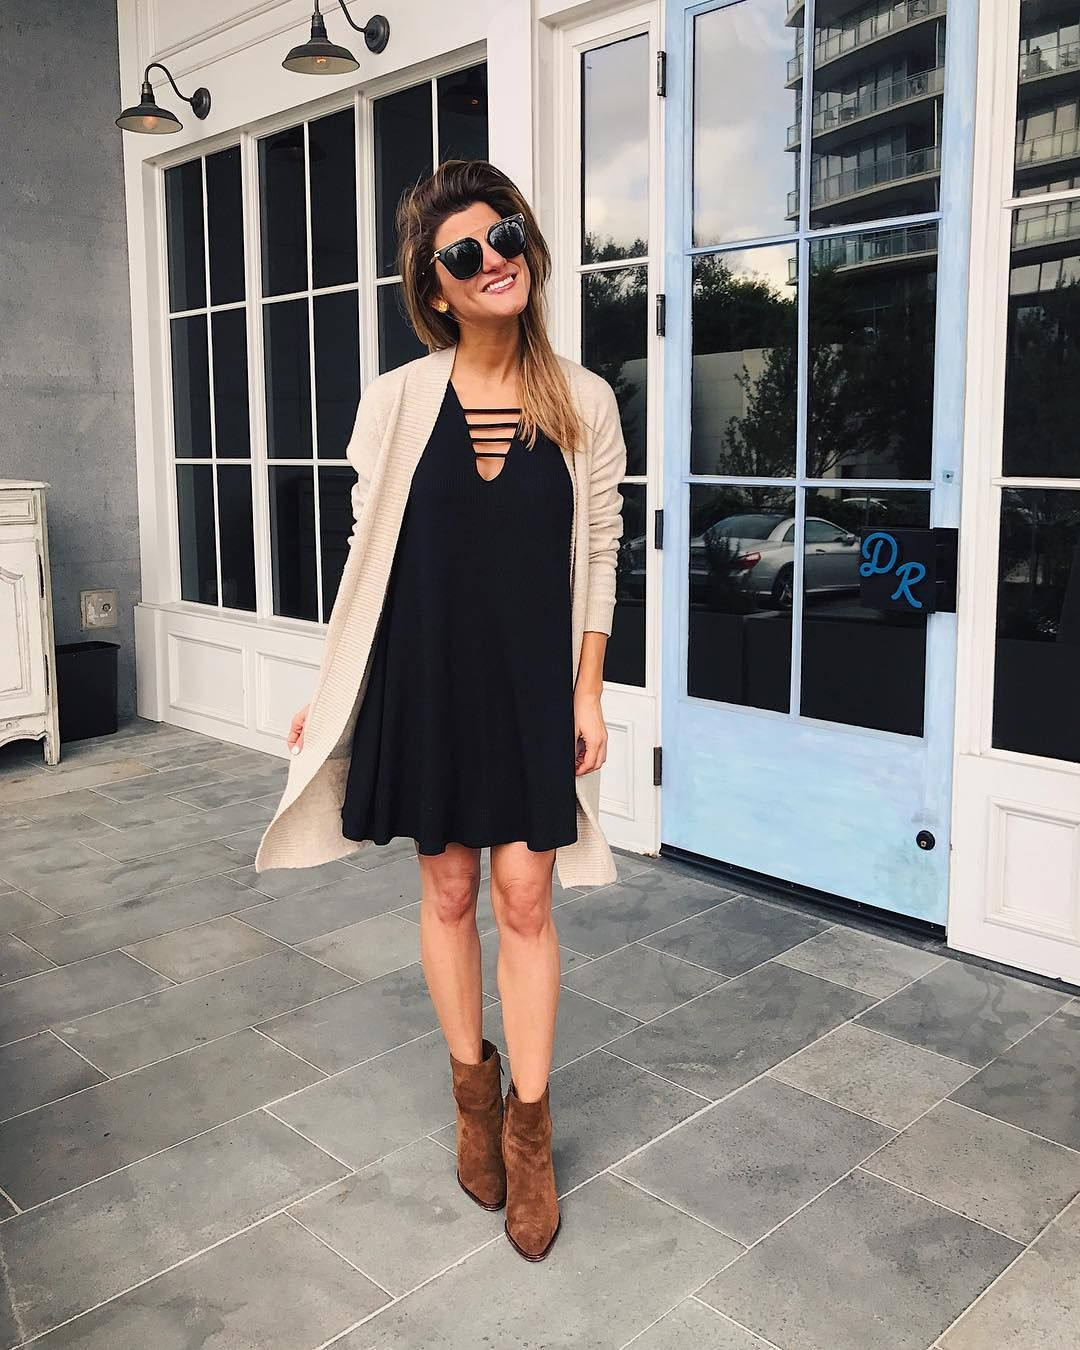 f3243c2cb09 Fall outfit idea with black swing dress and cardigan